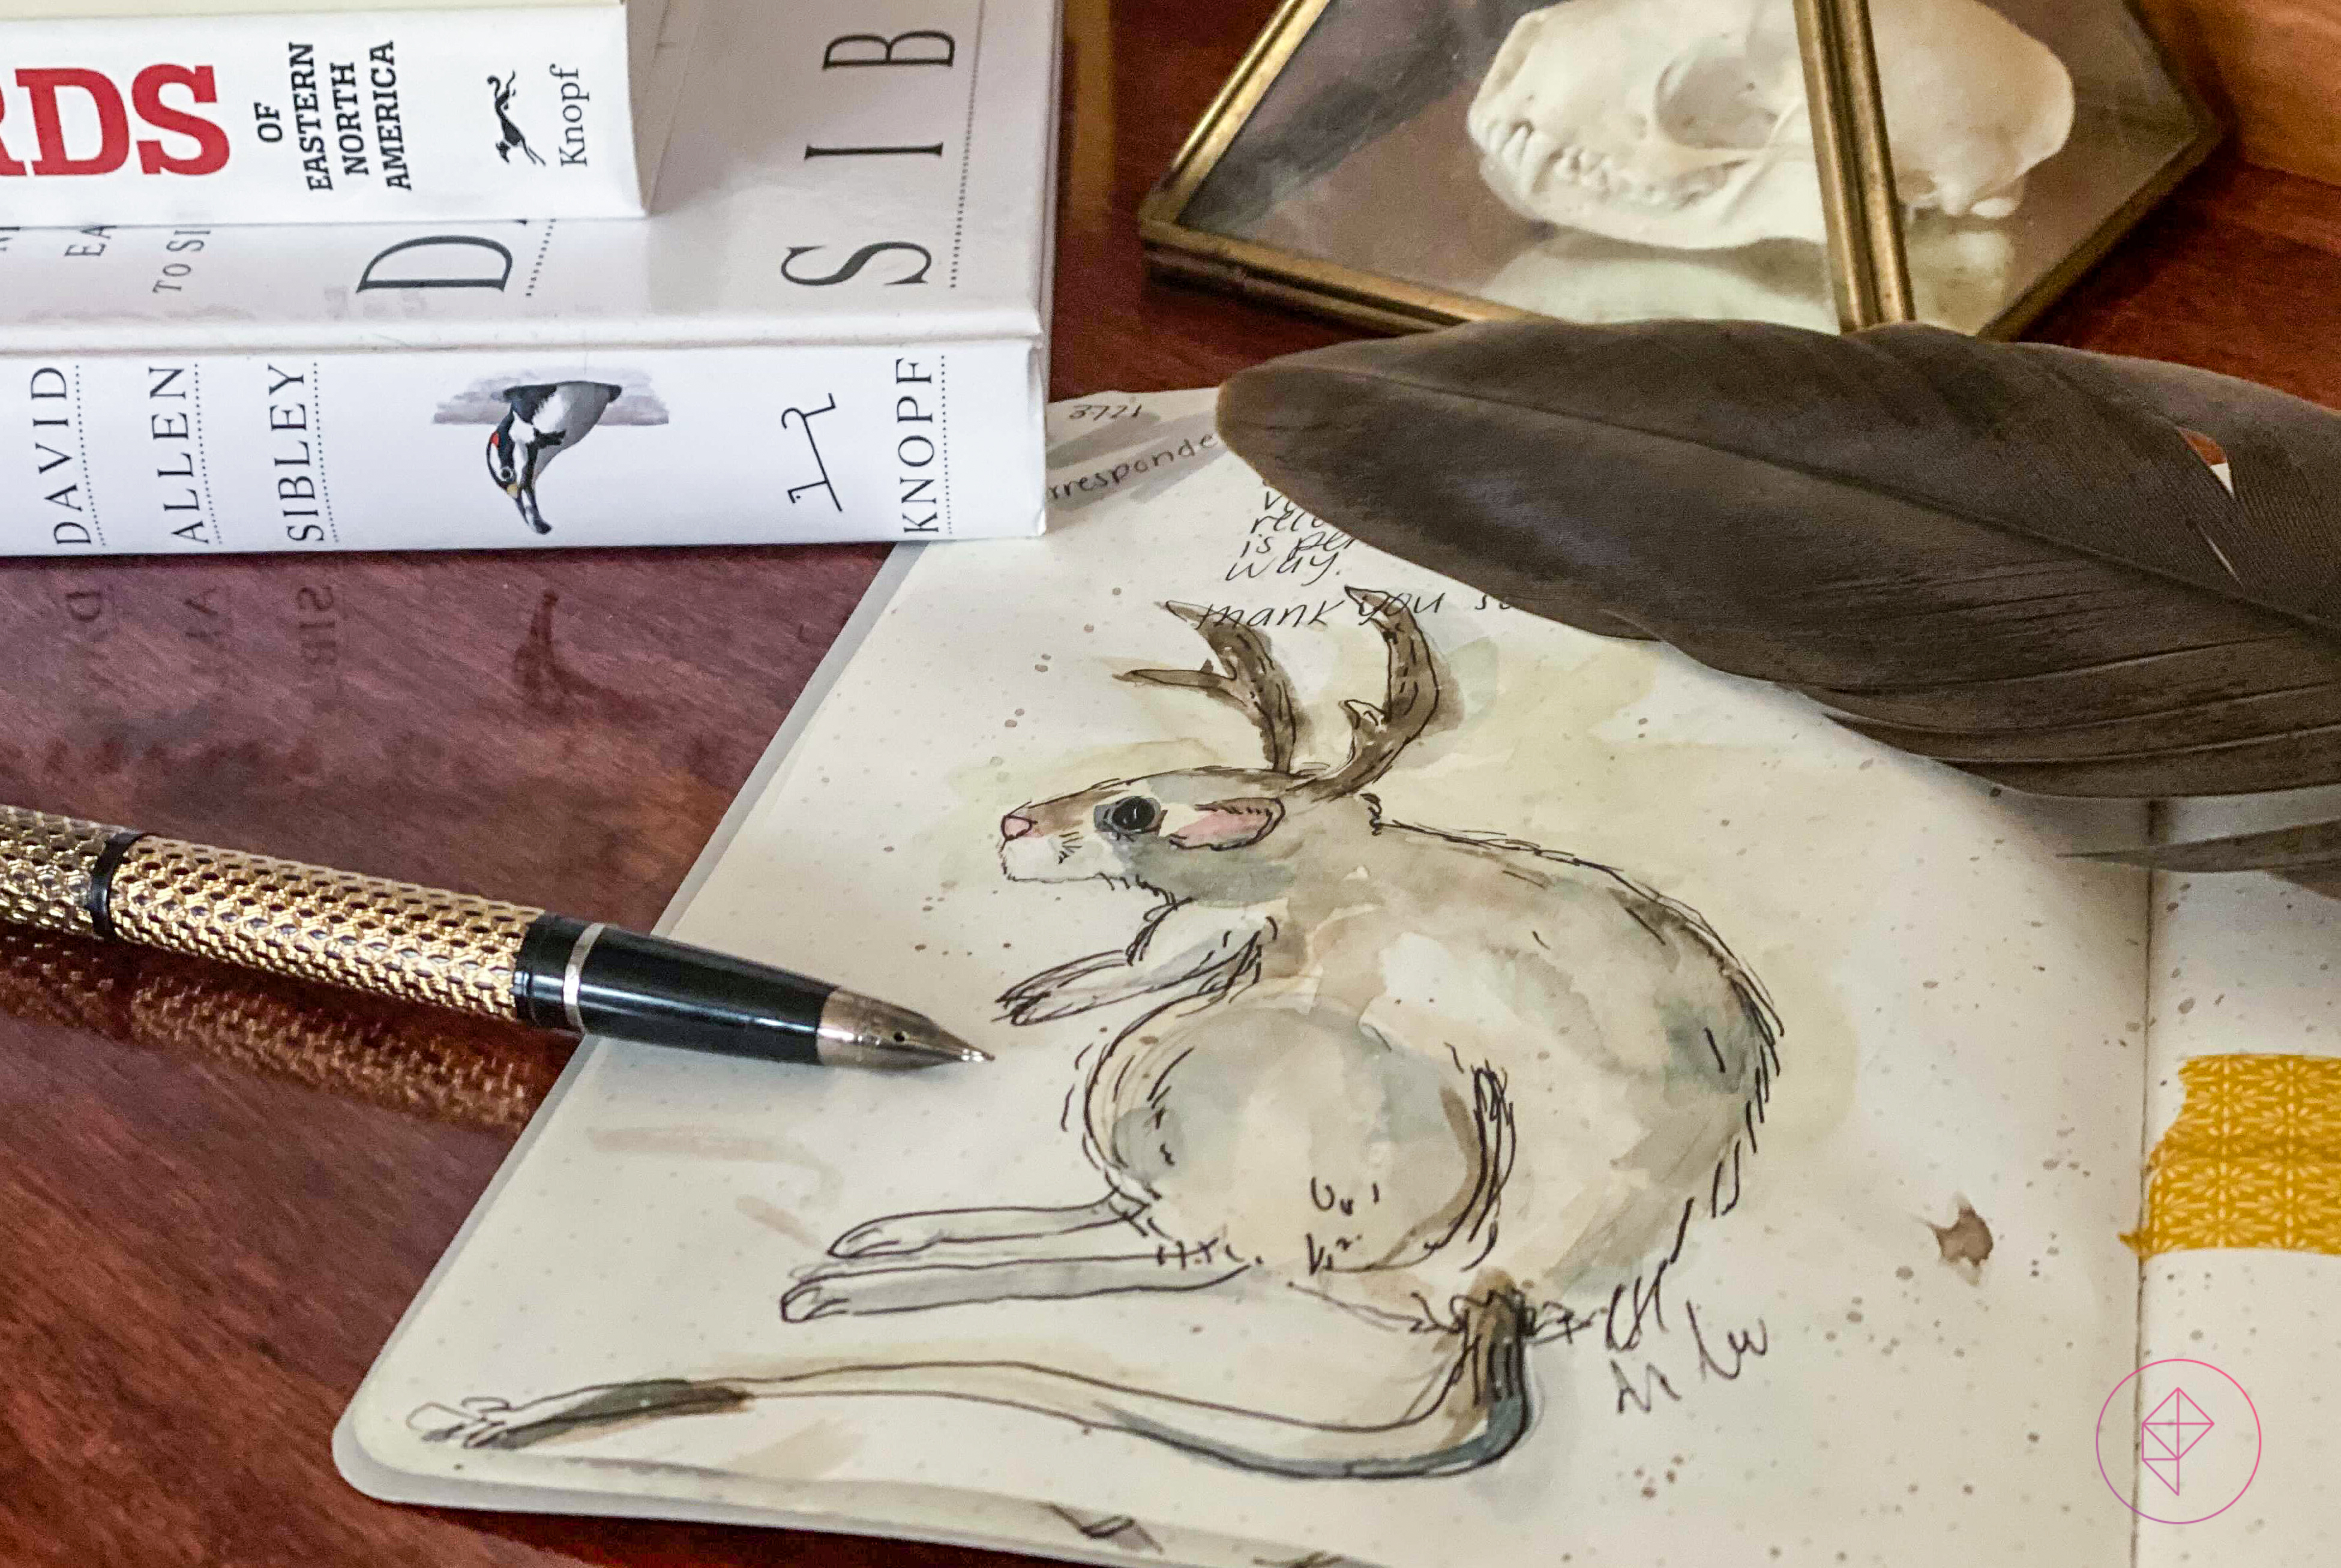 A watercolor painting of a rodent with horns, with a fountain pen next to it